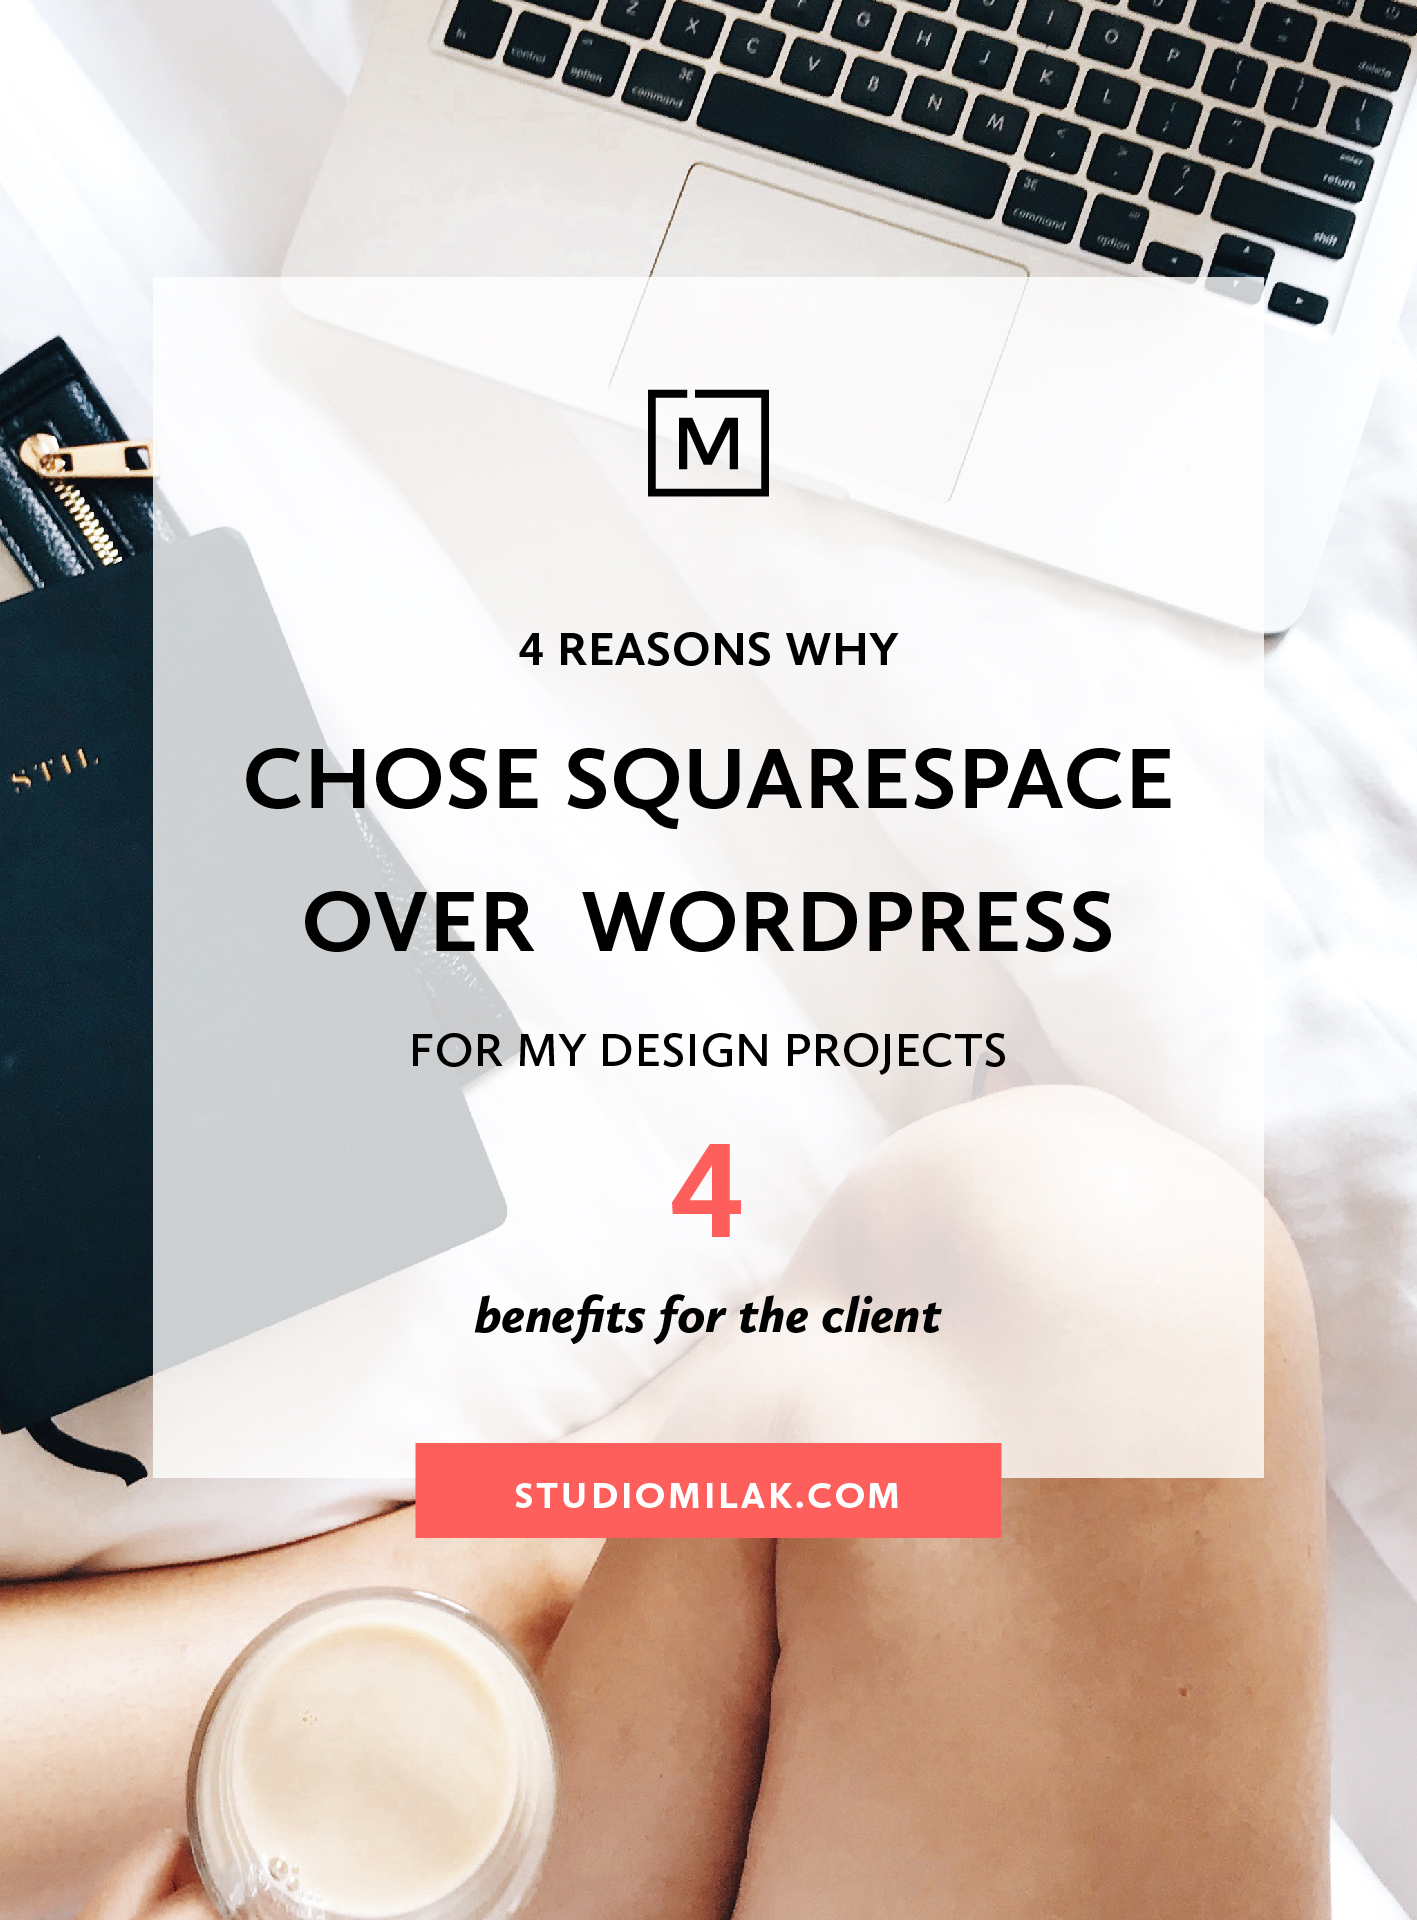 4 reasons why I choose Squarespace over Wordpress for my web design projects